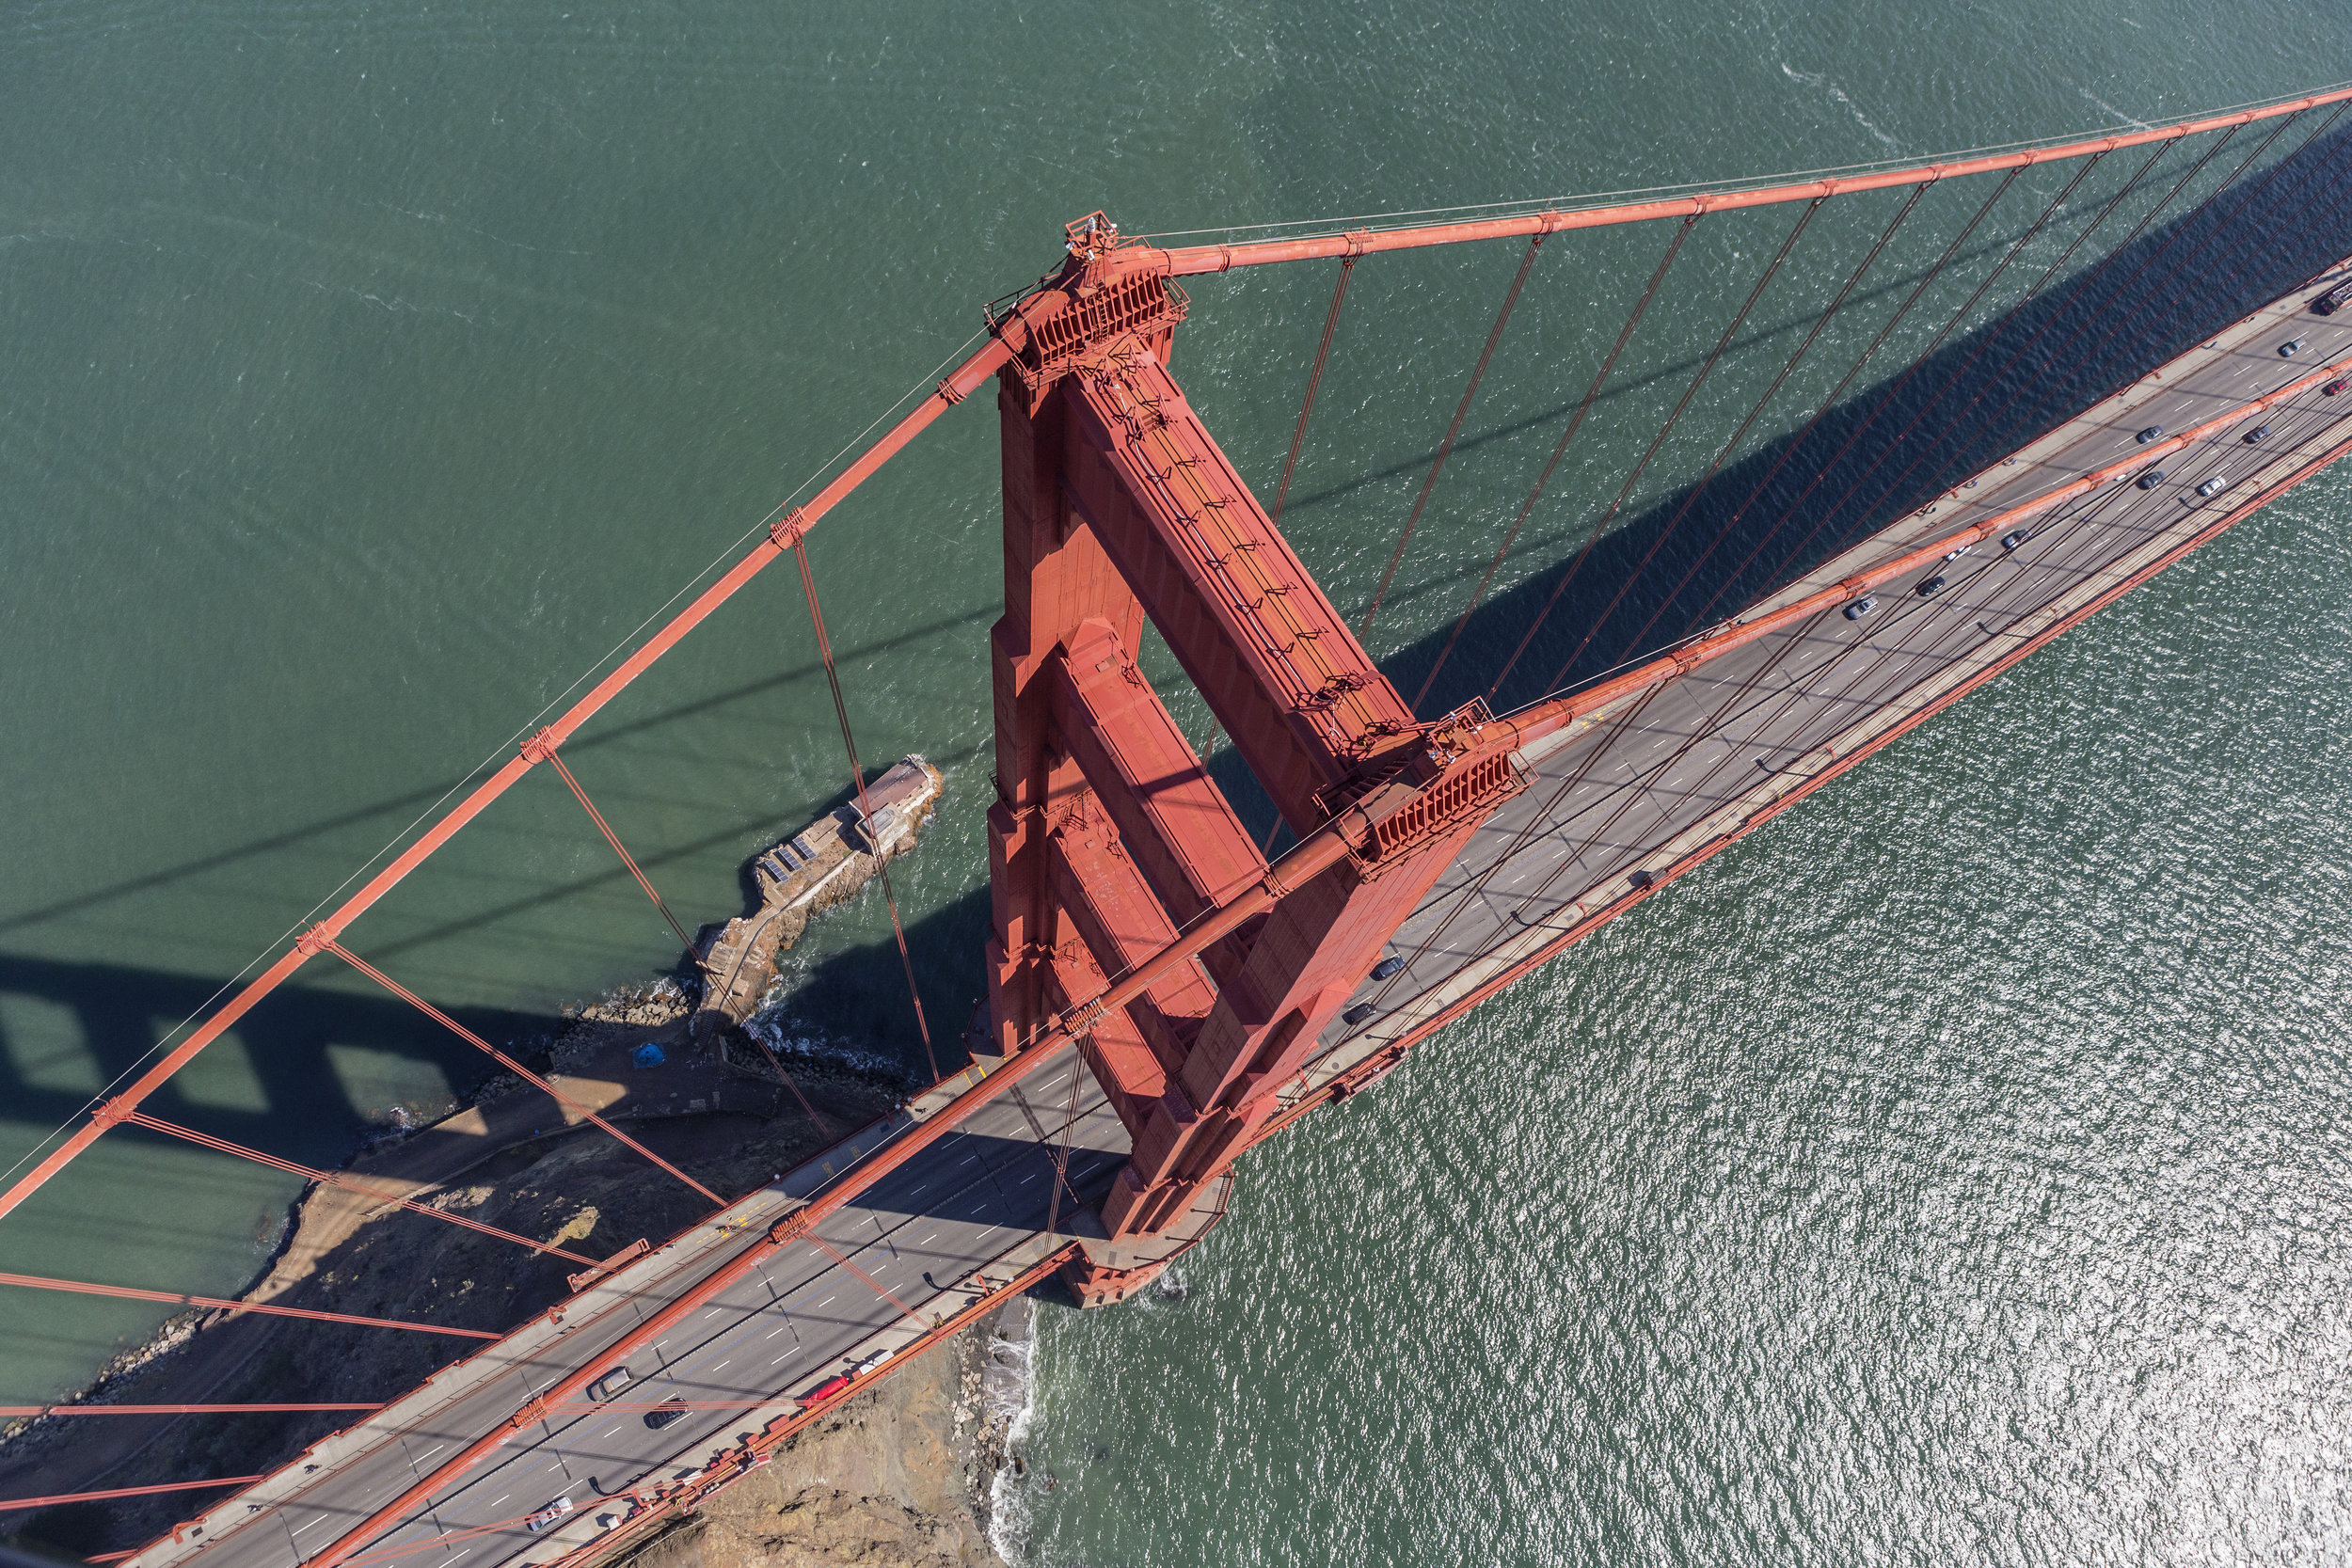 THE MANUFACTURING SECTOR IS GROWING INSAN FRANCISCO - `